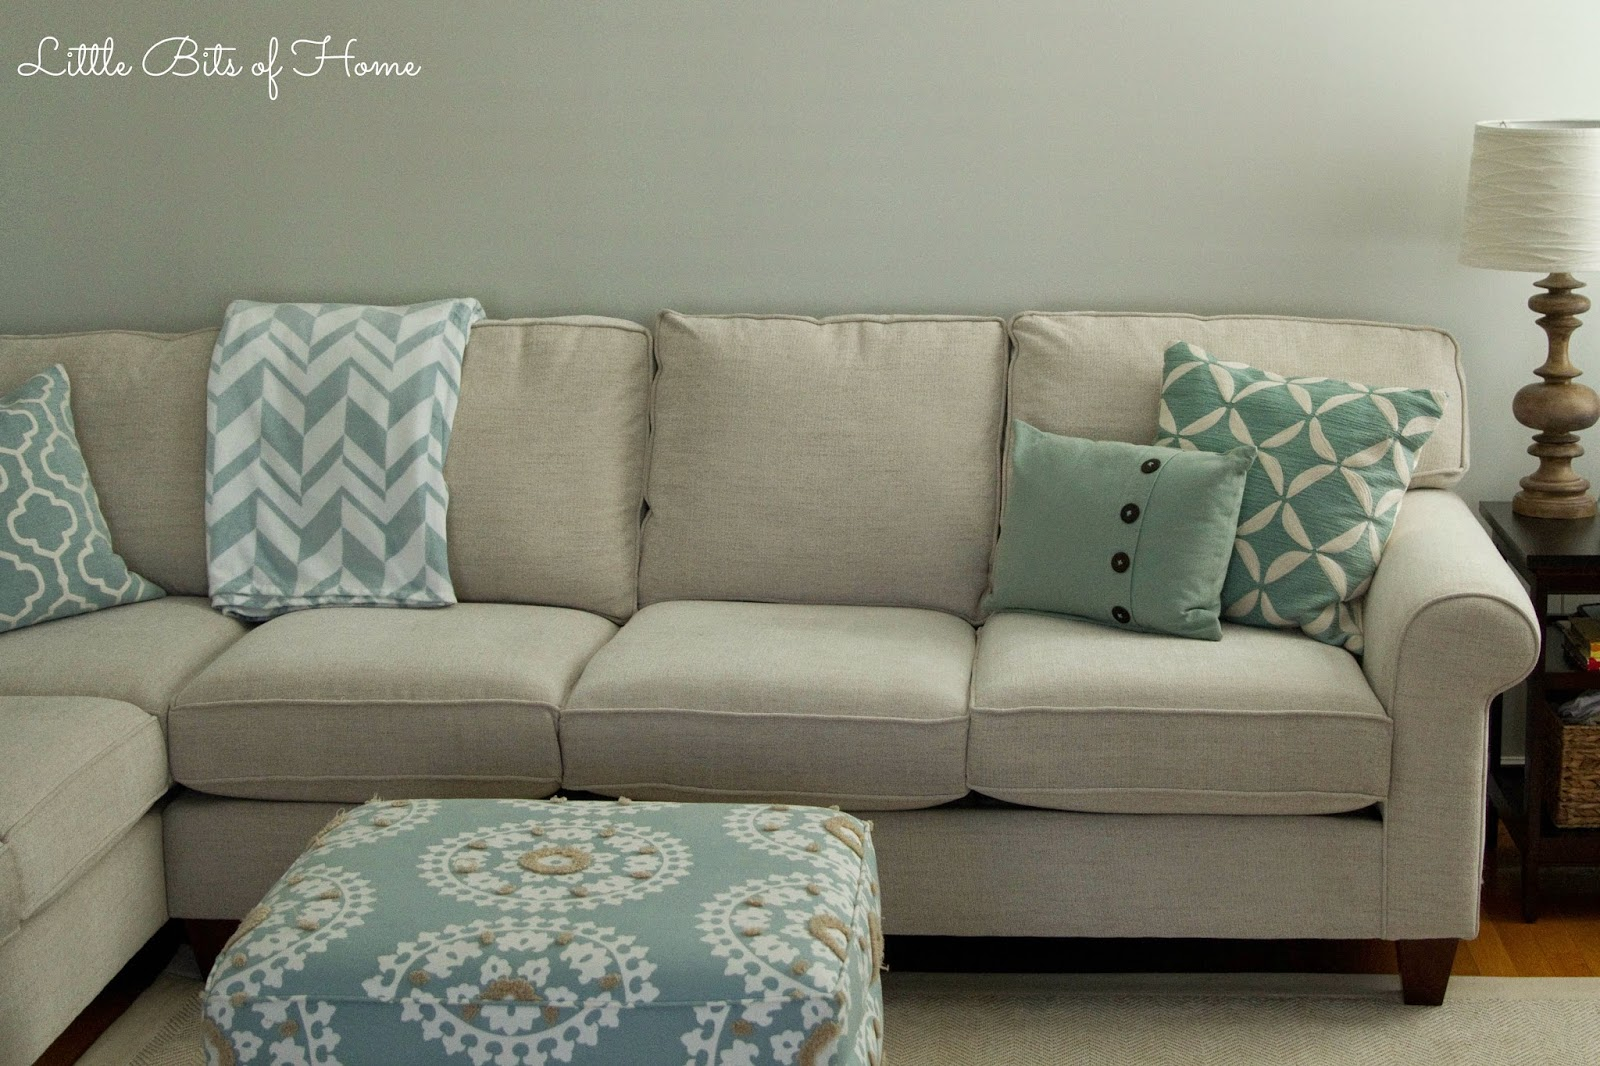 It Is A Higher Quality, Slightly Larger Version Of The Amalfi Couch We  Originally Purchased.